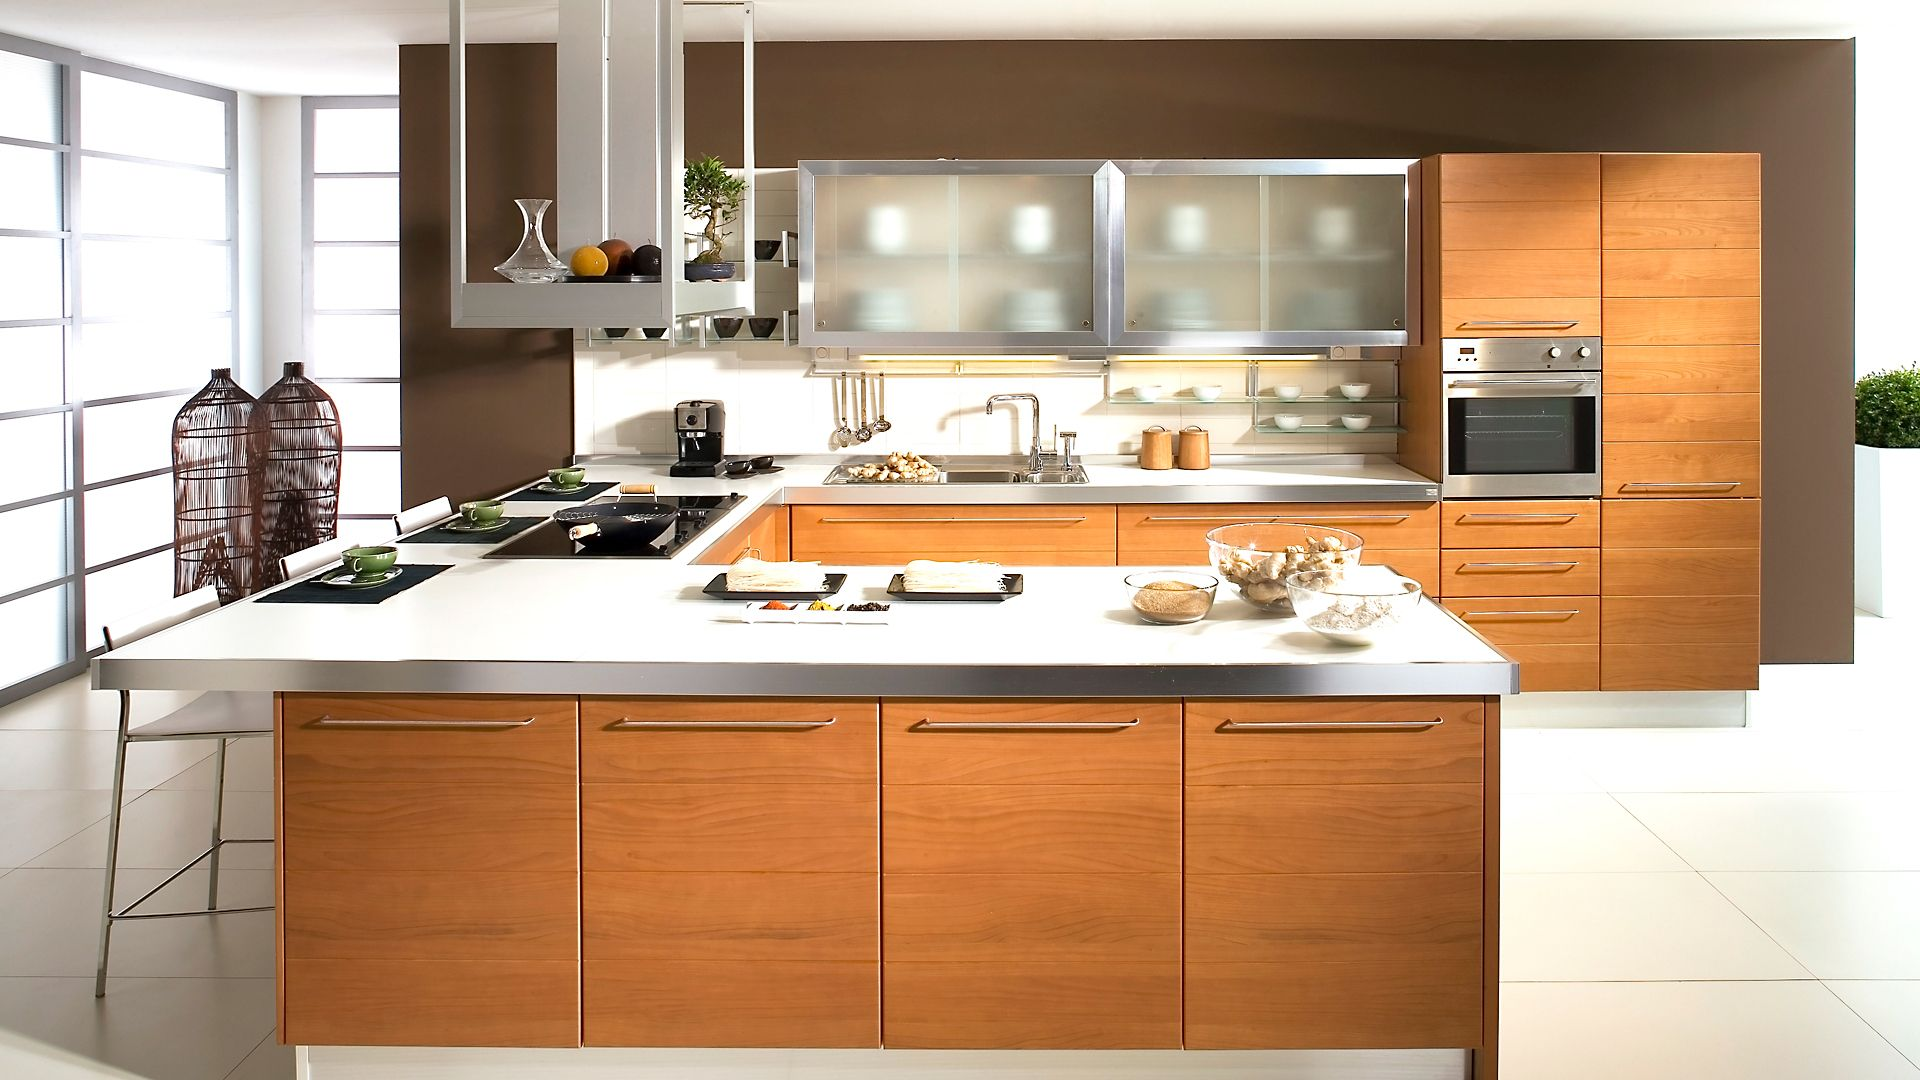 Http Www Kitchenspro Com Gallery Htm Gallery 25 Online Kitchen Cabinets Kitchen Cabinets For Sale Luxury Kitchens